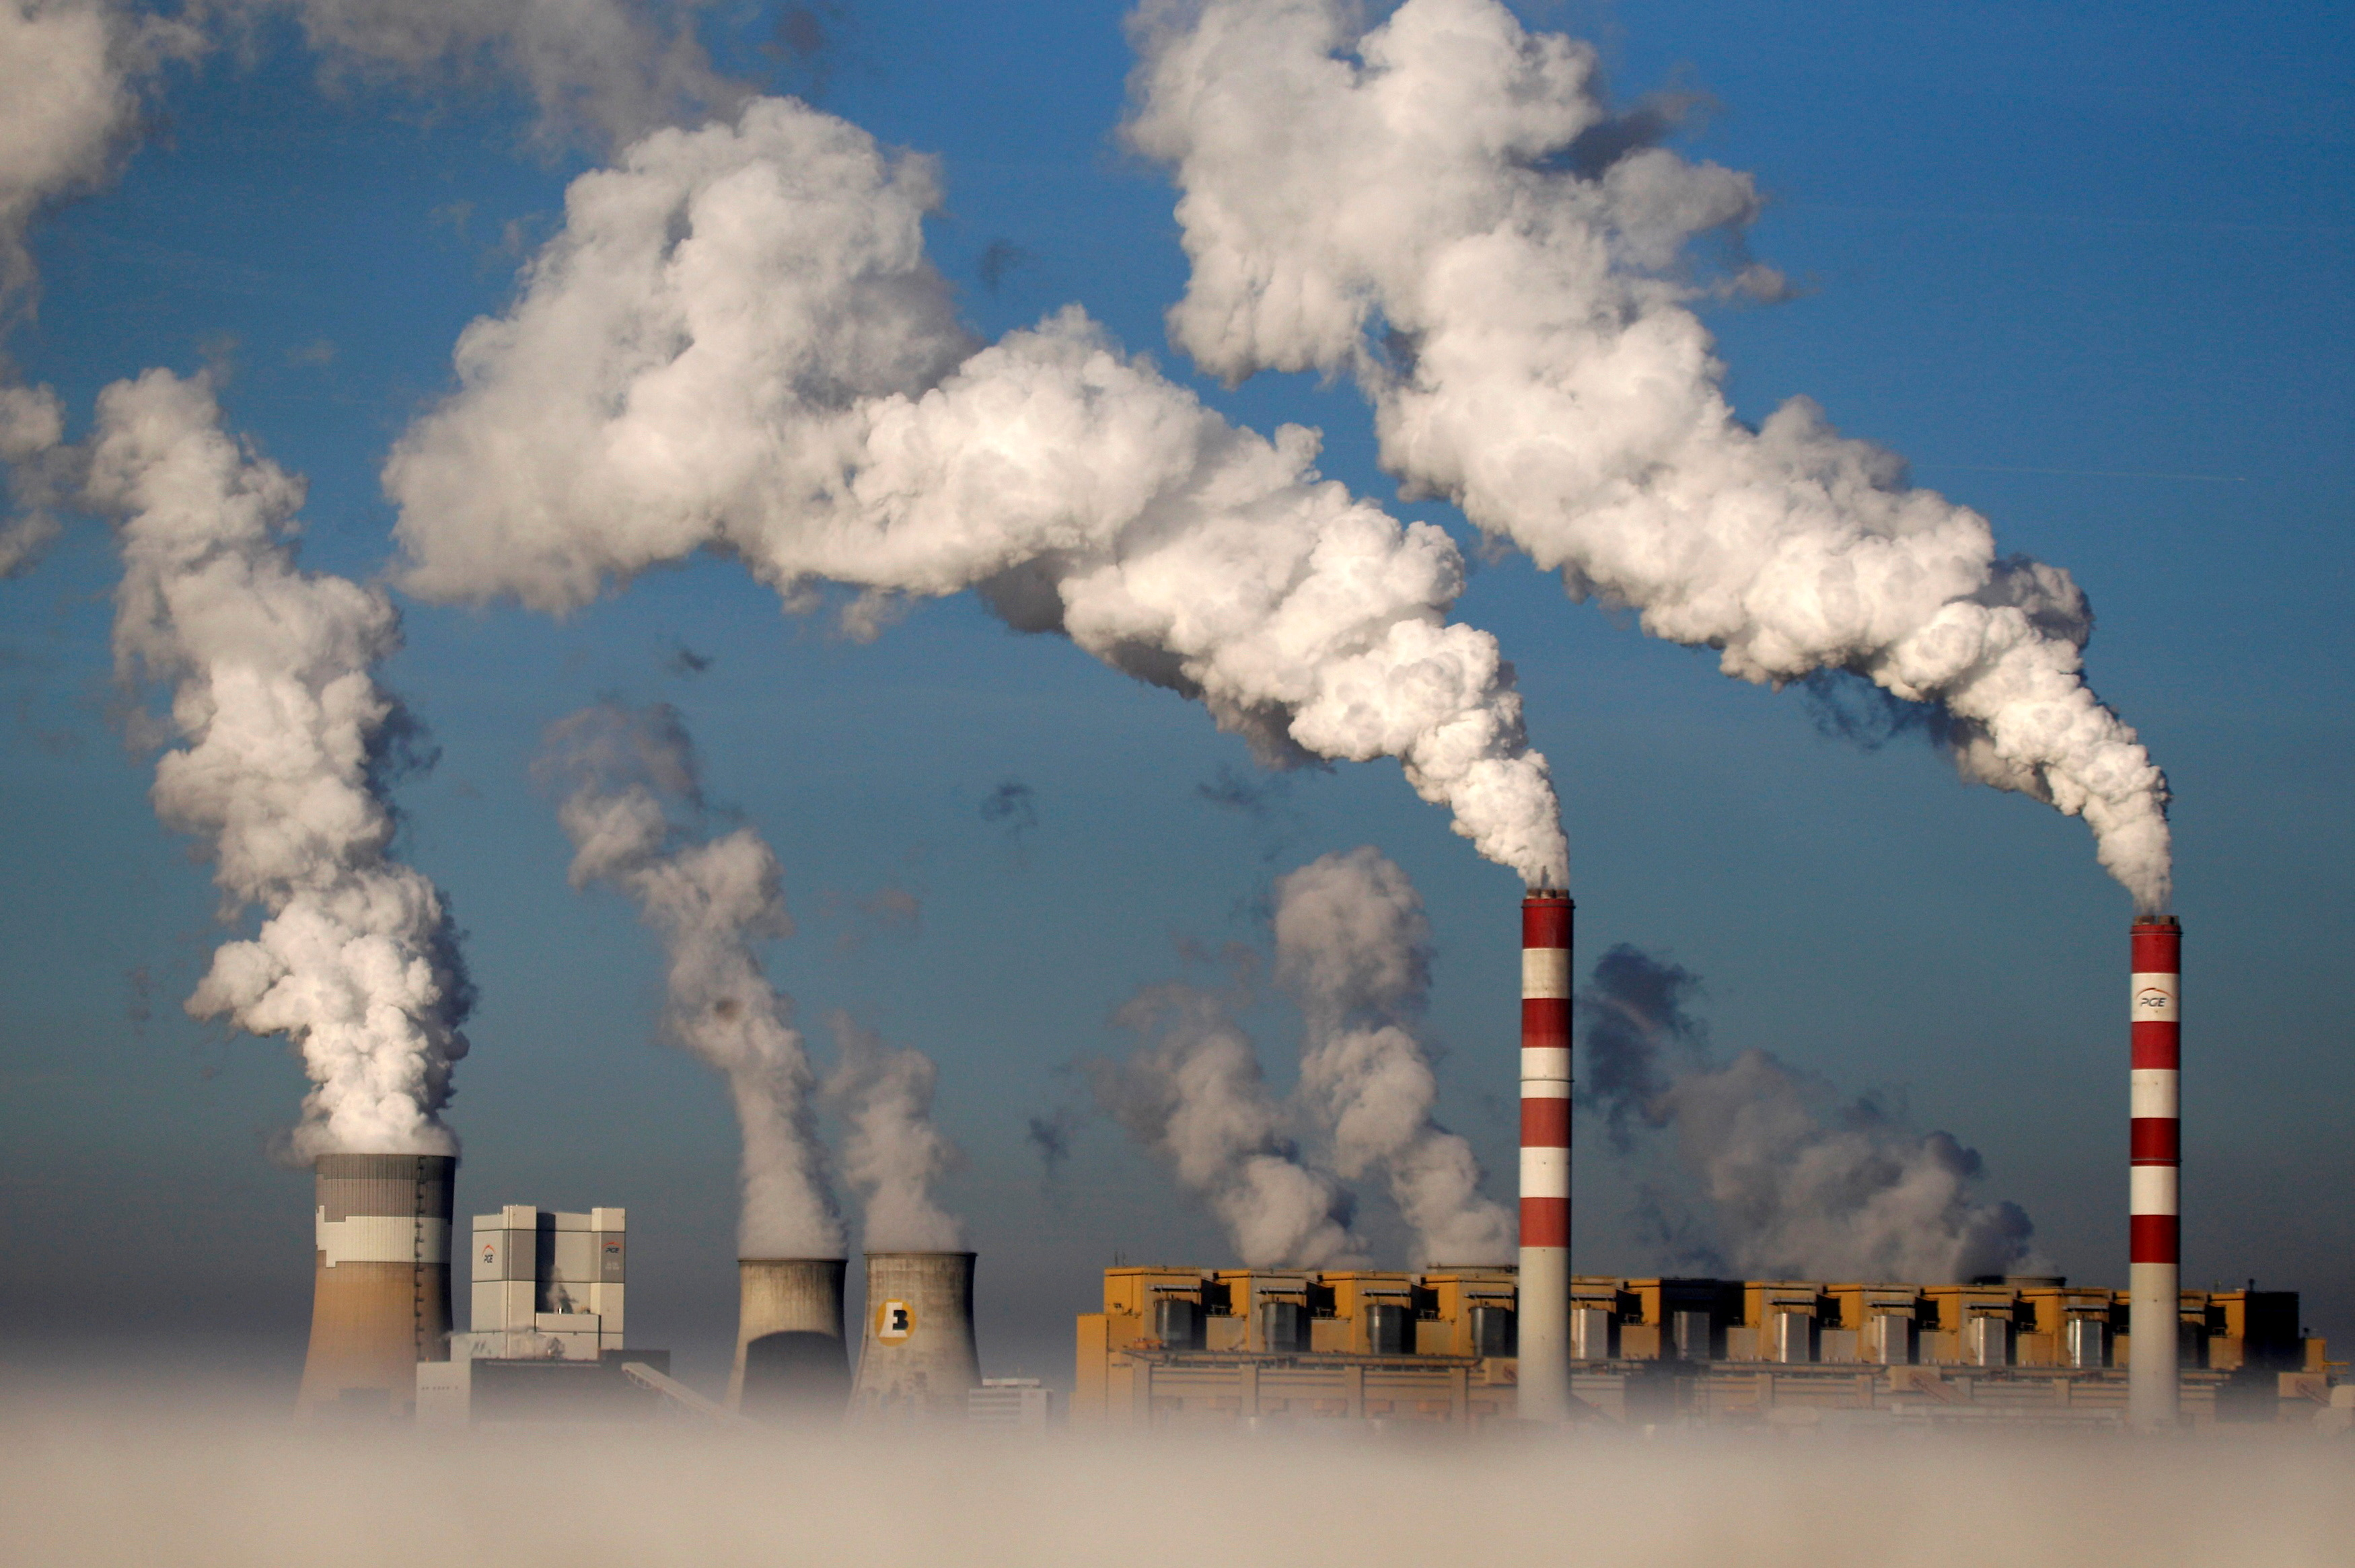 Smoke billows from the chimneys of the Belchatow power station in Belchatow, Poland, October 31, 2013. REUTERS/Kacper Pempel//File Photo